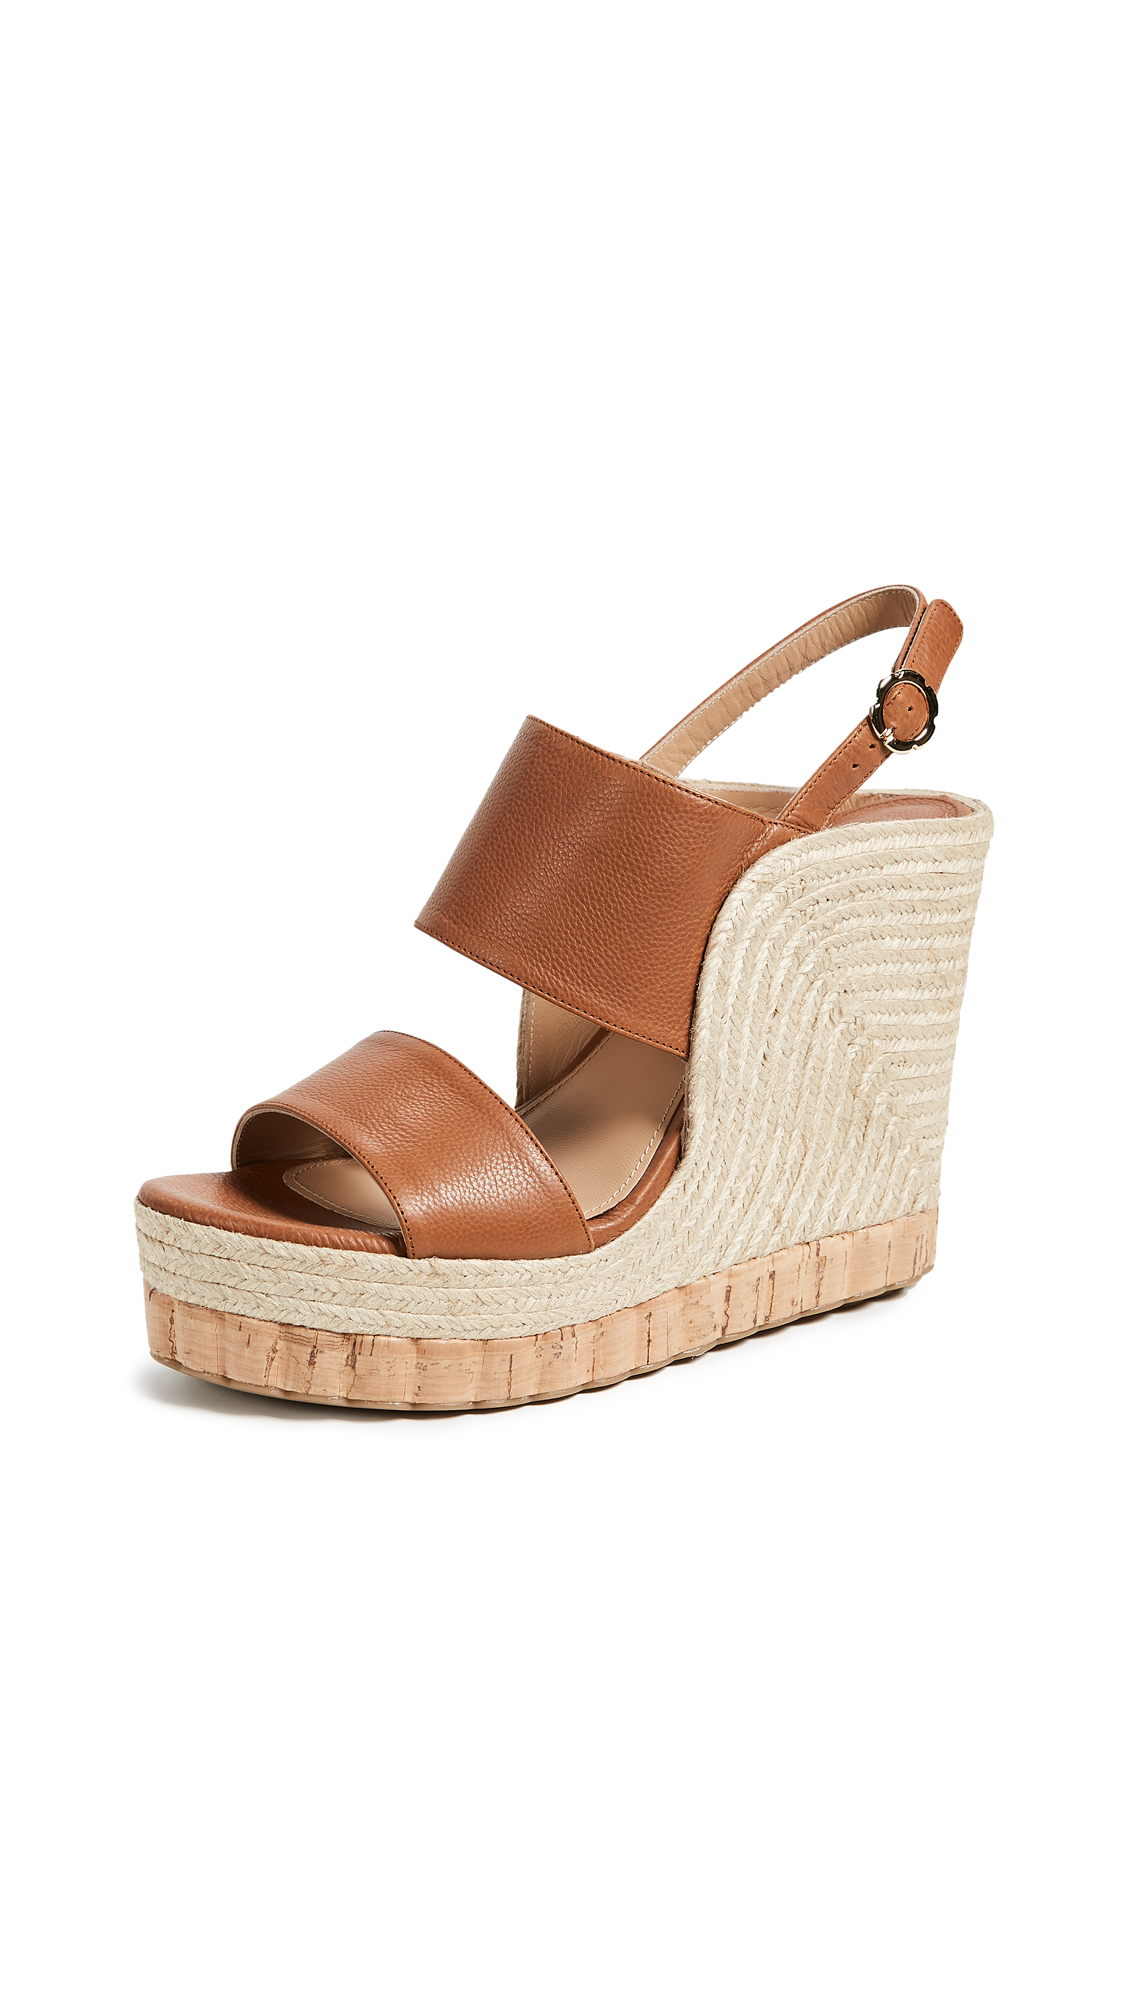 Salvatore Ferragamo Maratea Wedge Sandals - Sella